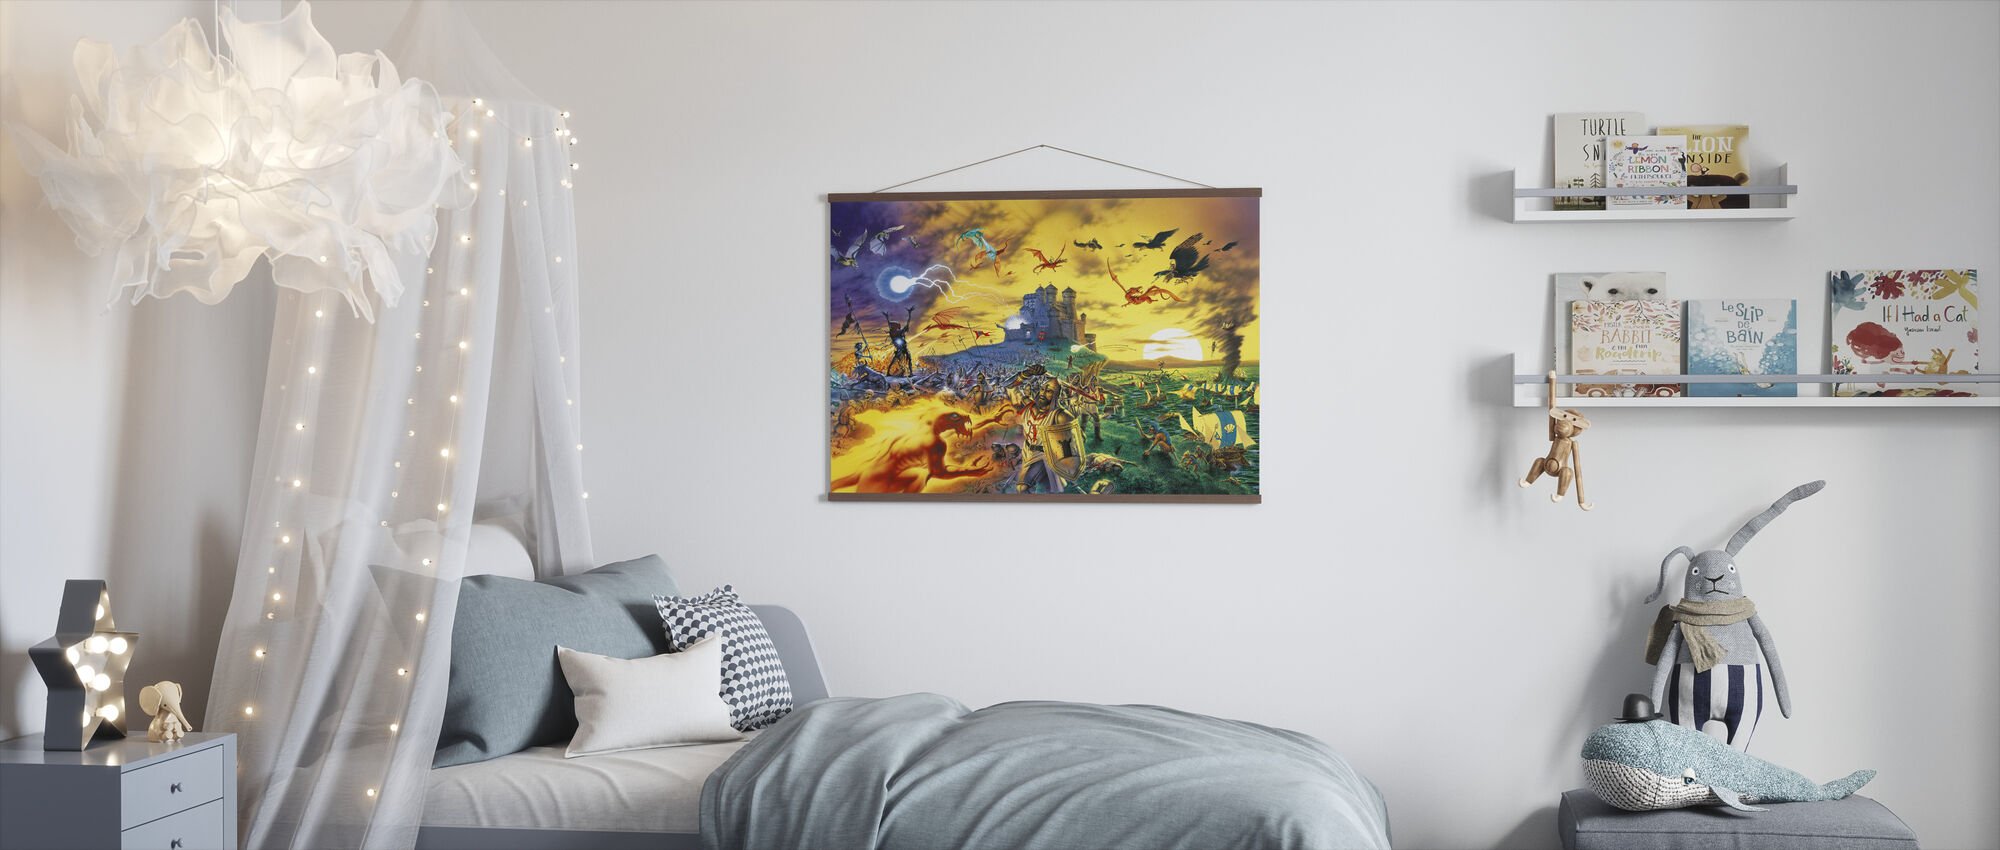 Fantasy Battle - Poster - Kids Room